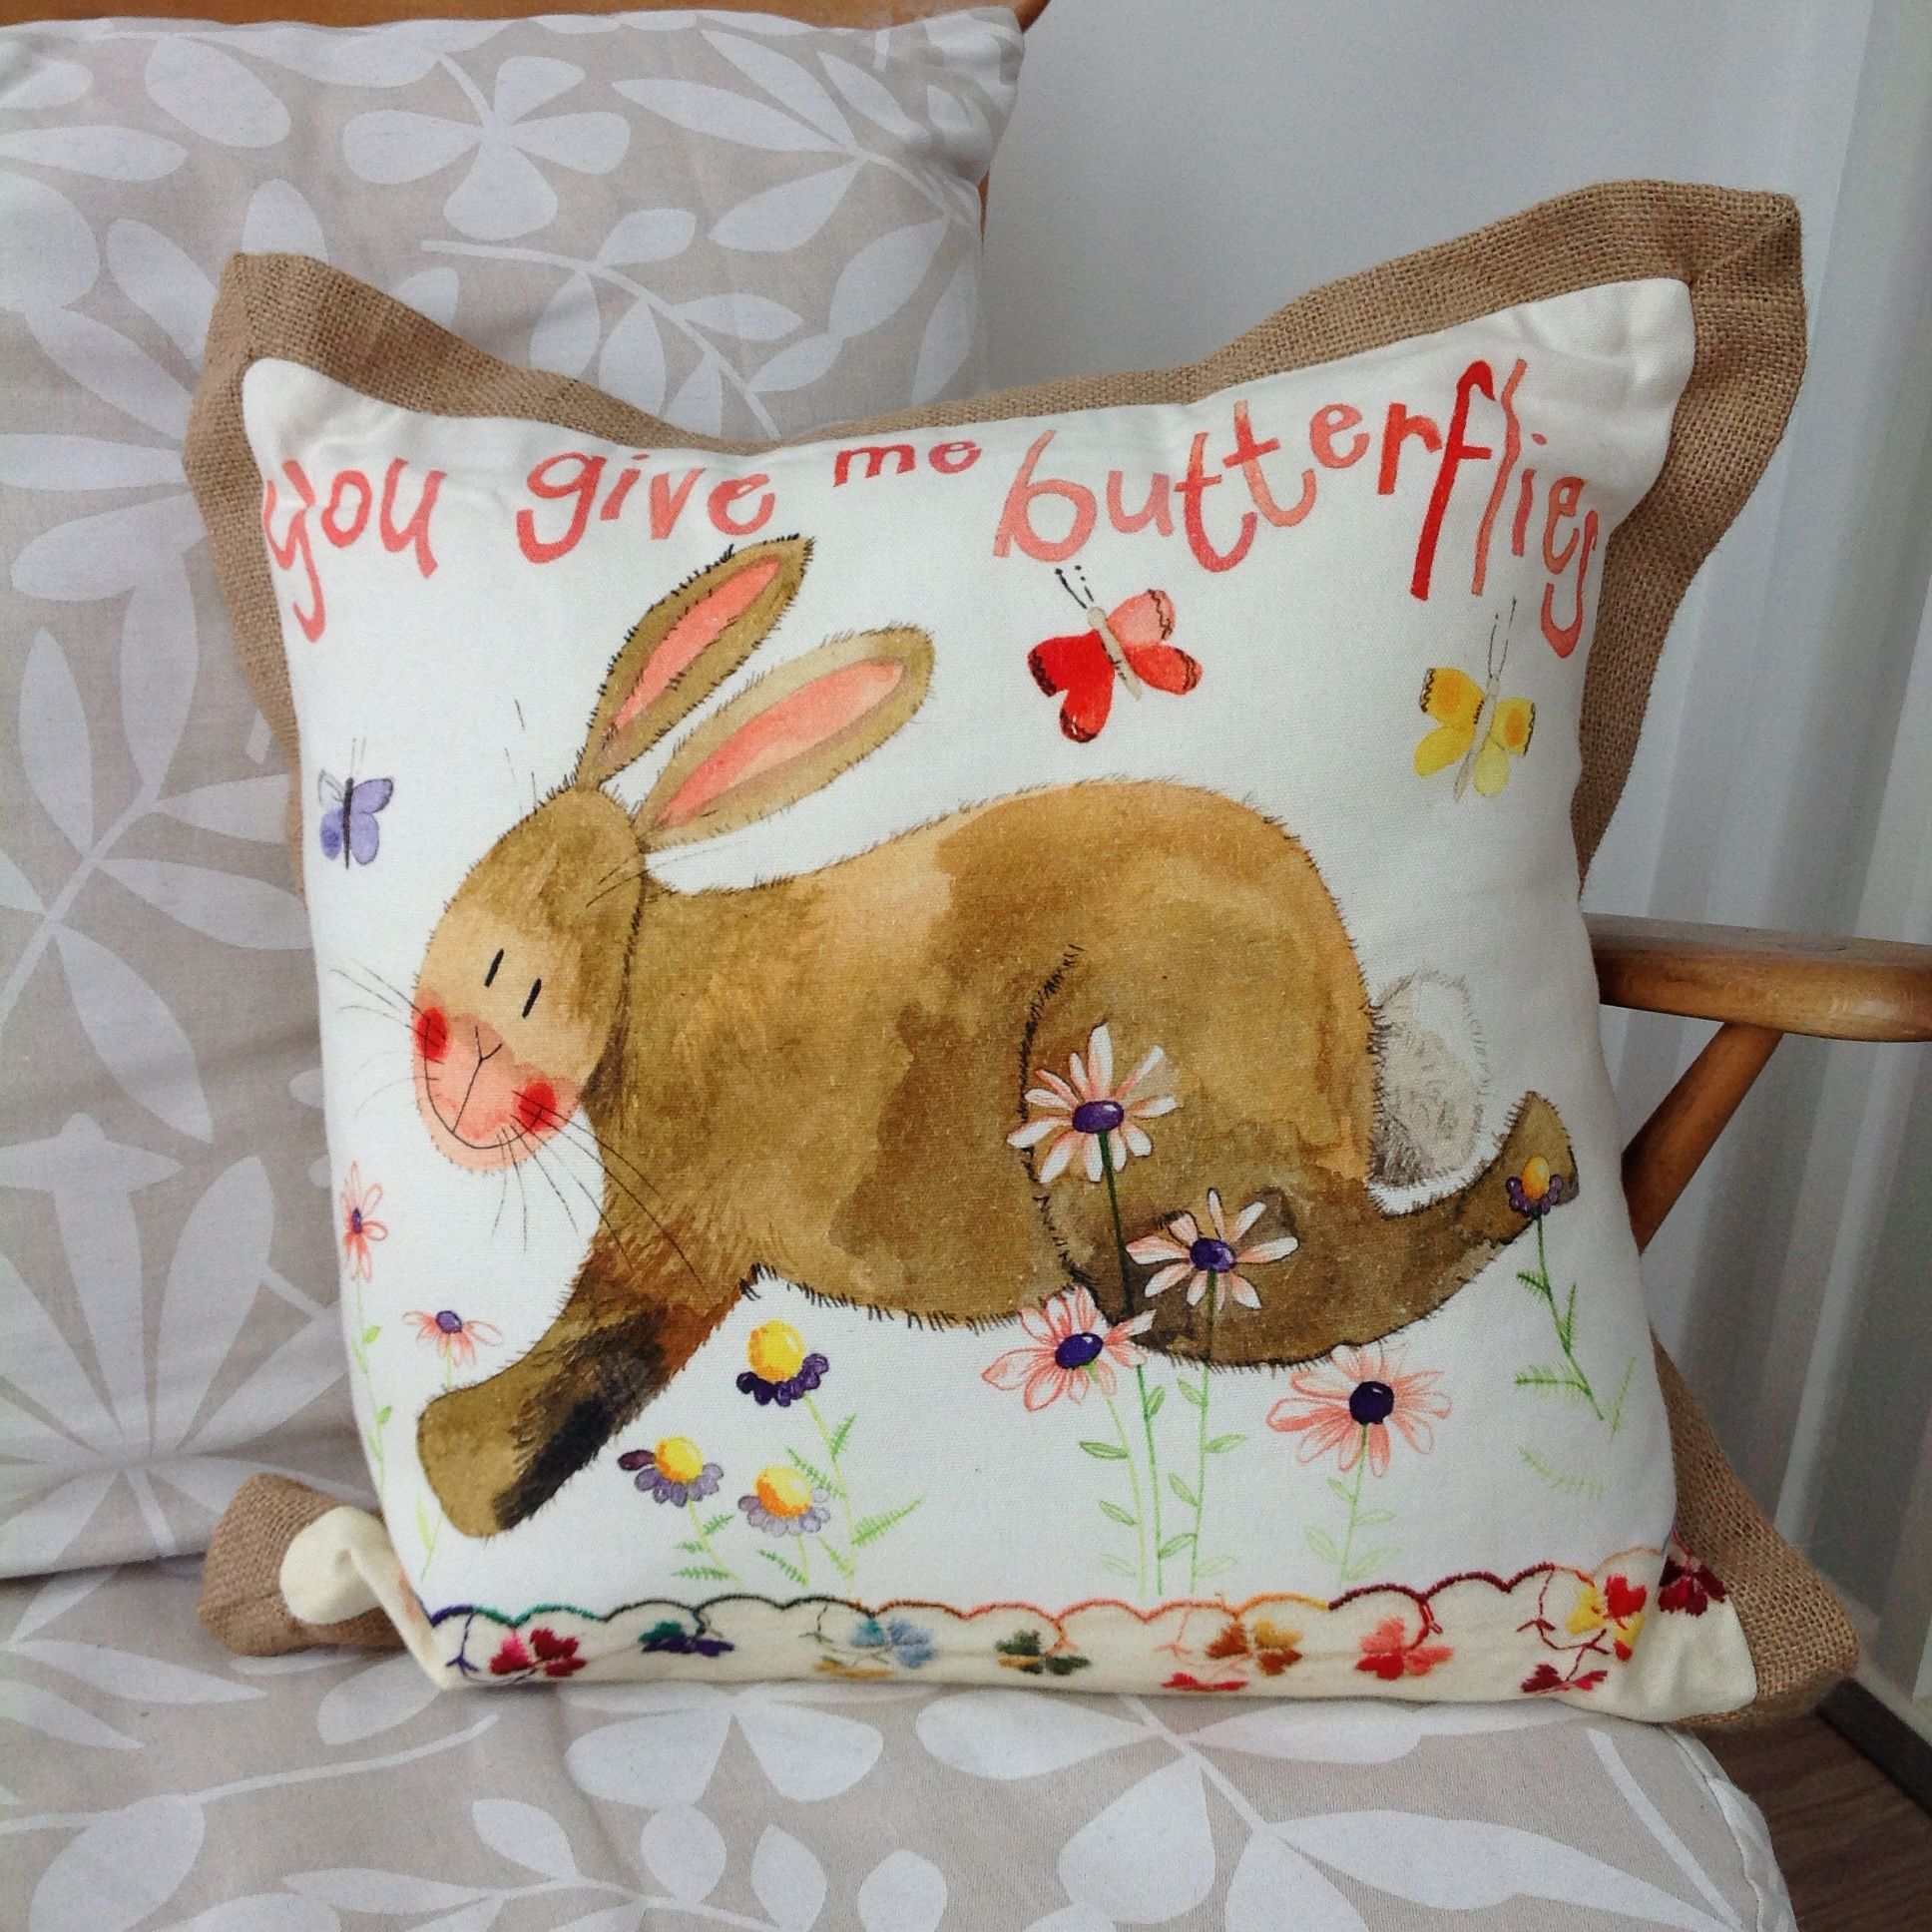 catalog/products/cushions/you-give-me-butterflies-cushion.JPG